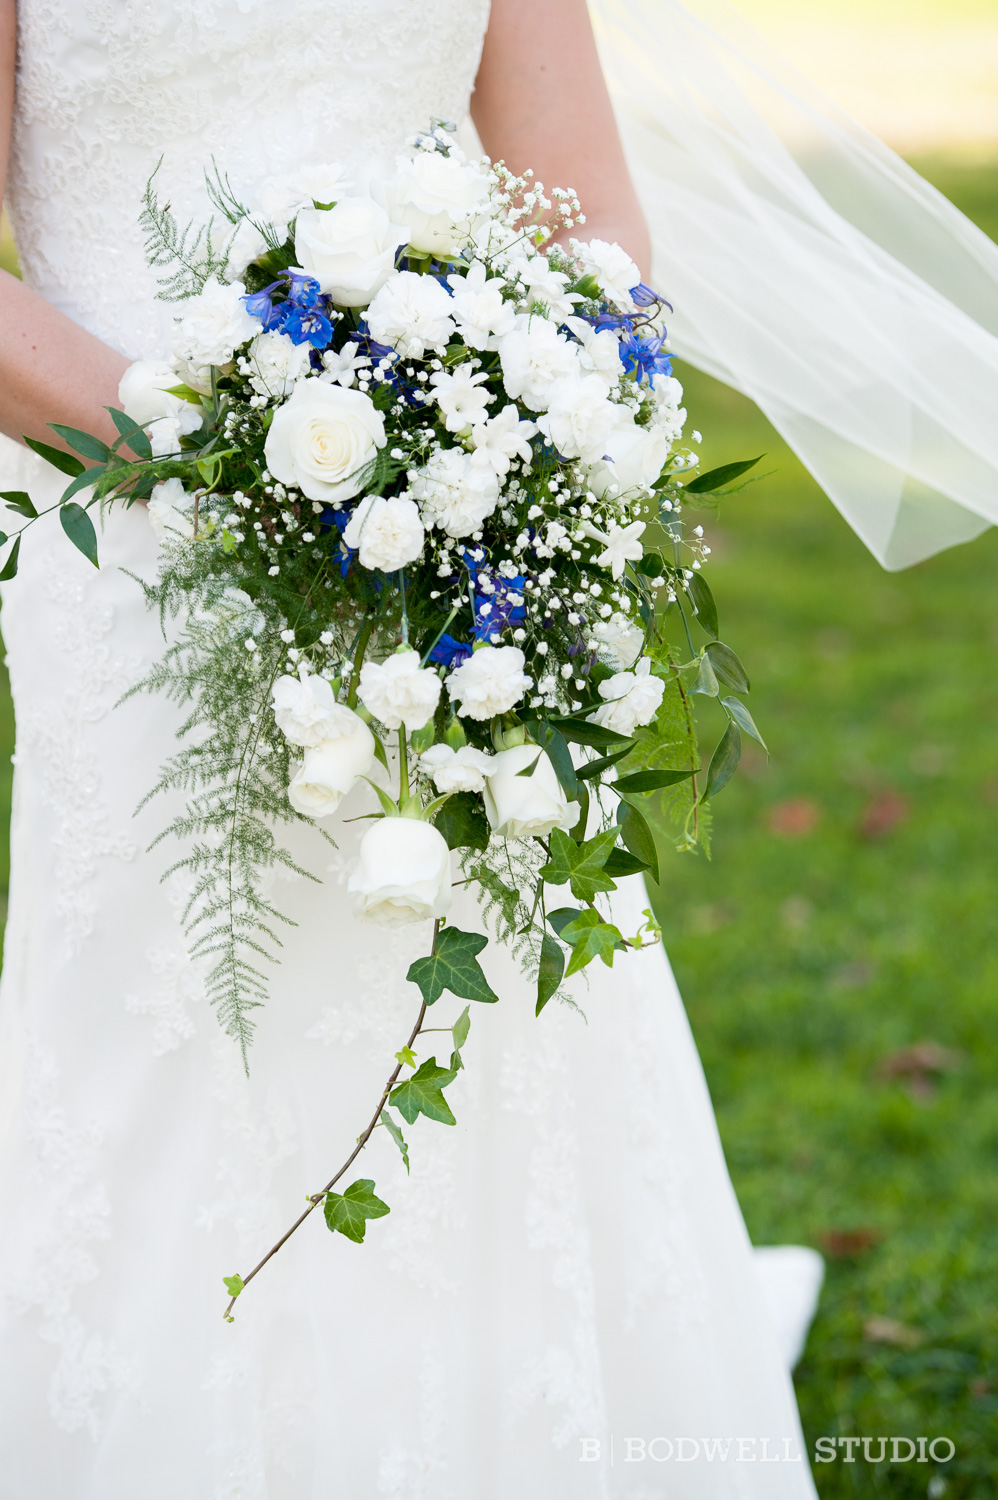 Dicks_Wedding_Blog_015.jpg